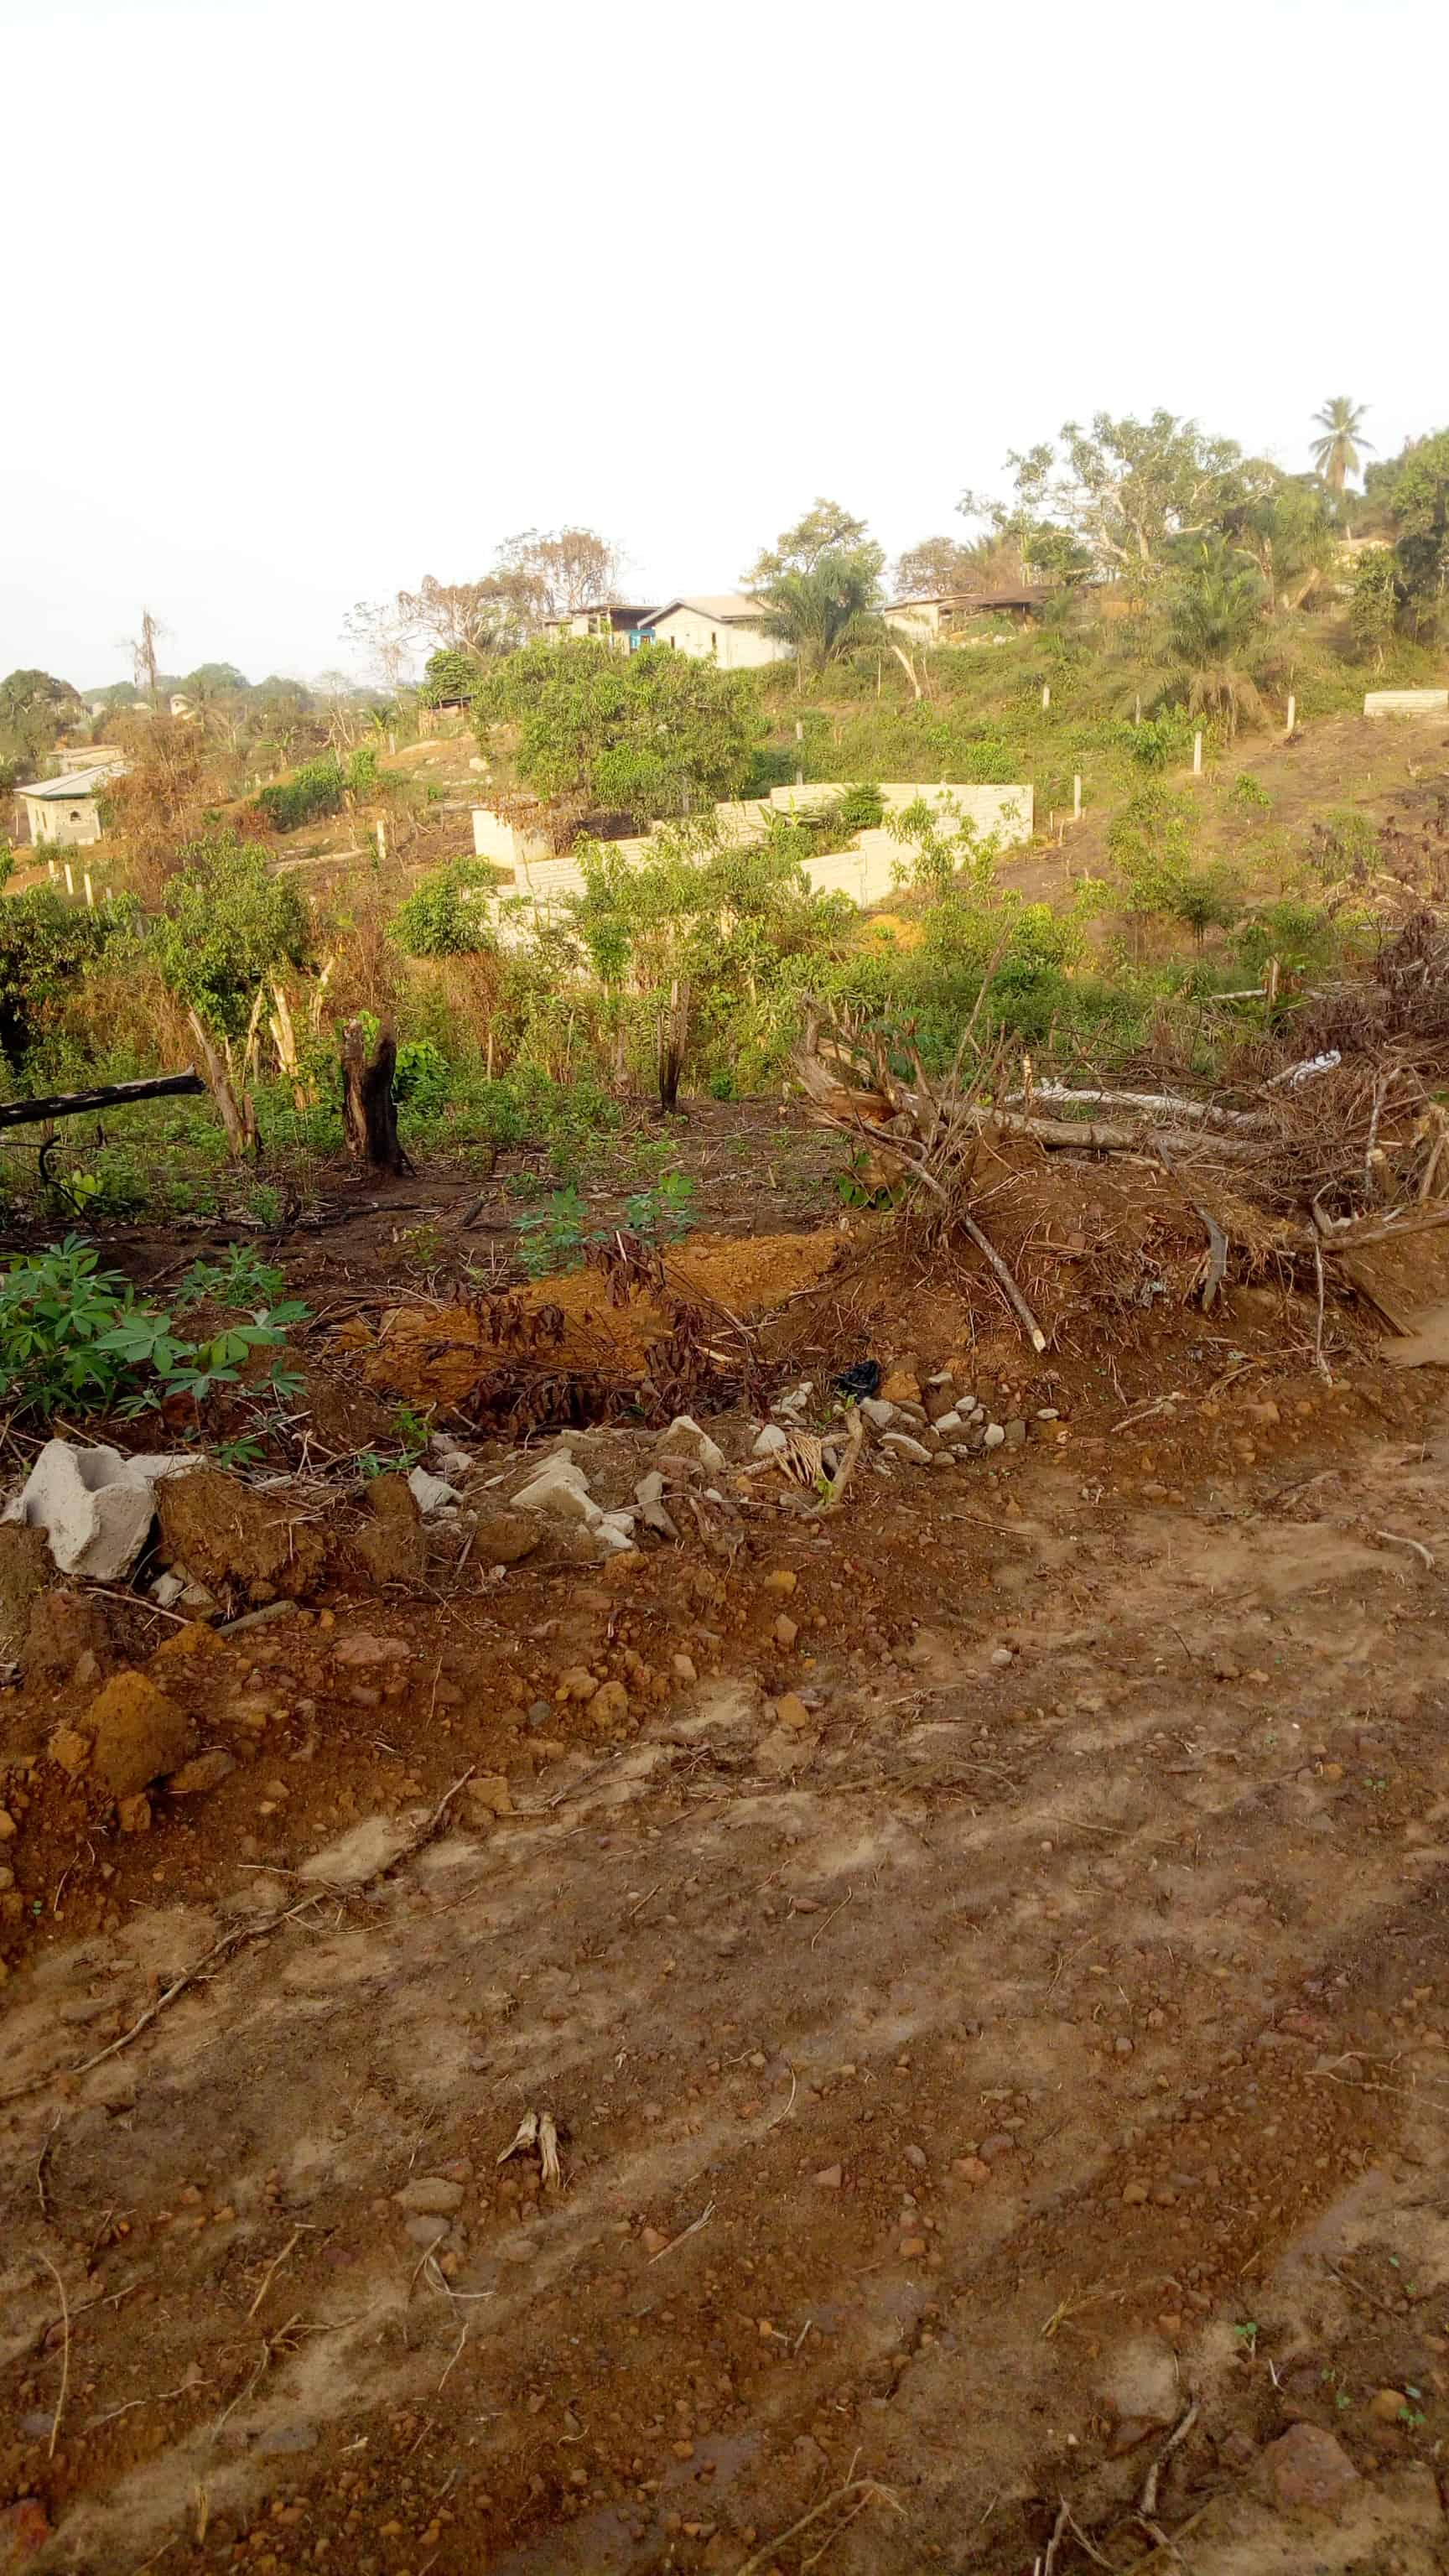 Land for sale at Douala, PK 20, 20 - 1000 m2 - 22 500 000 FCFA